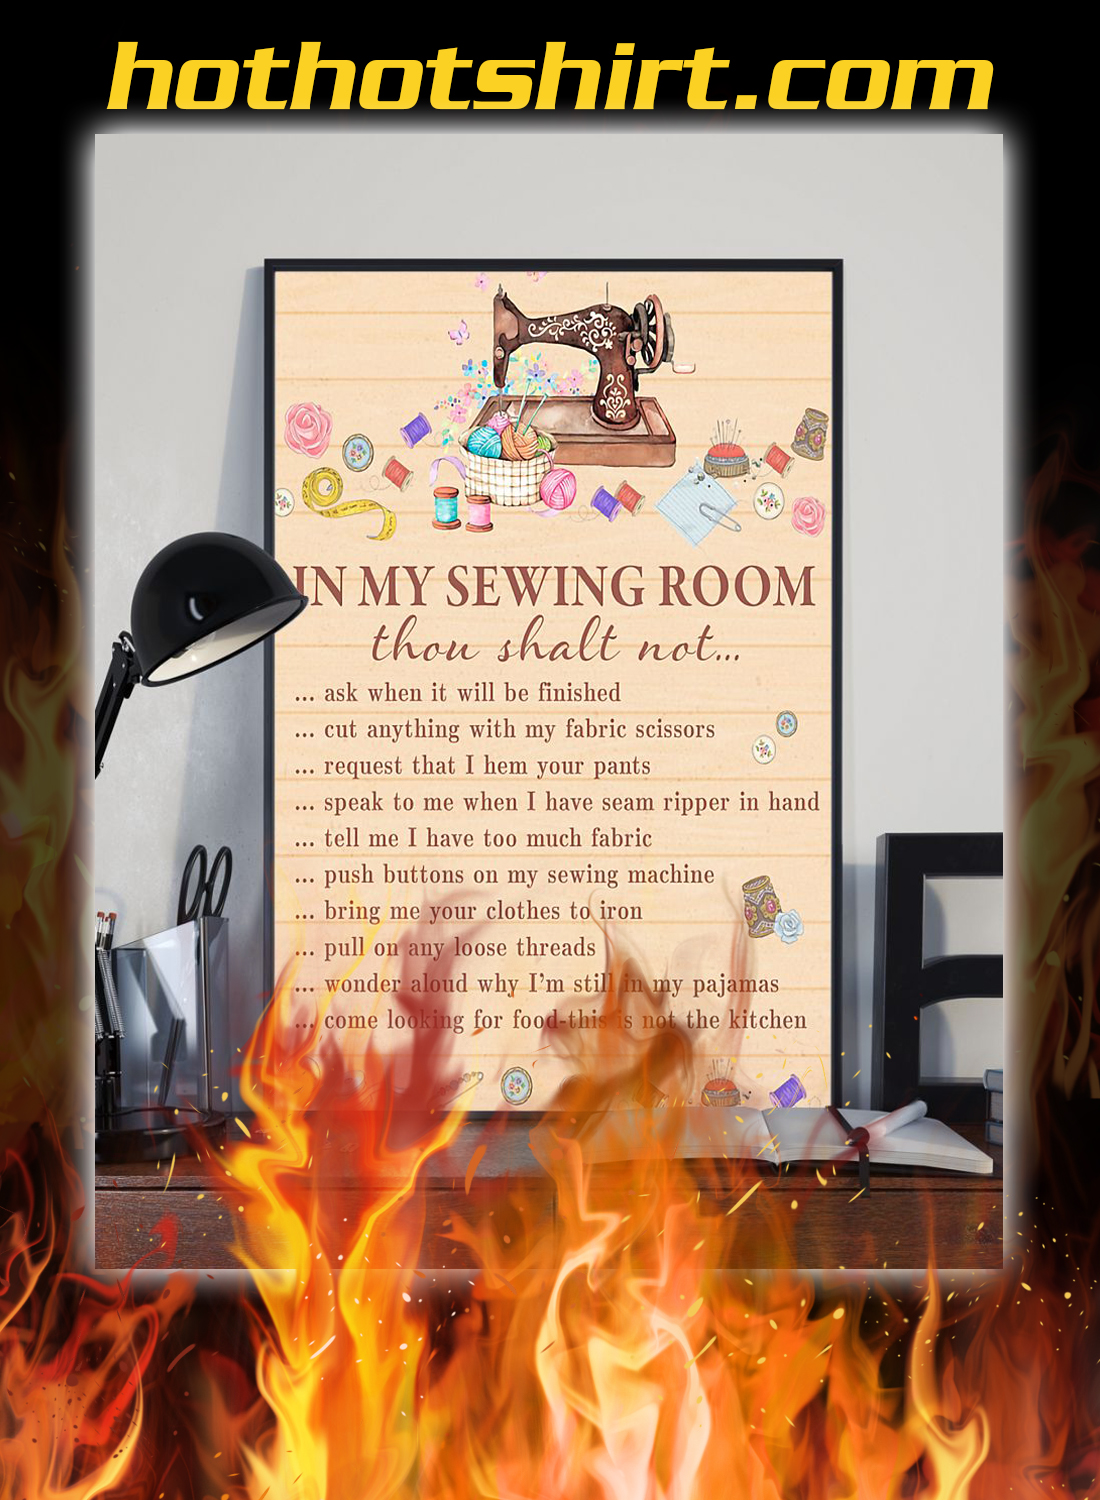 Sewing in the sewing room poster 2